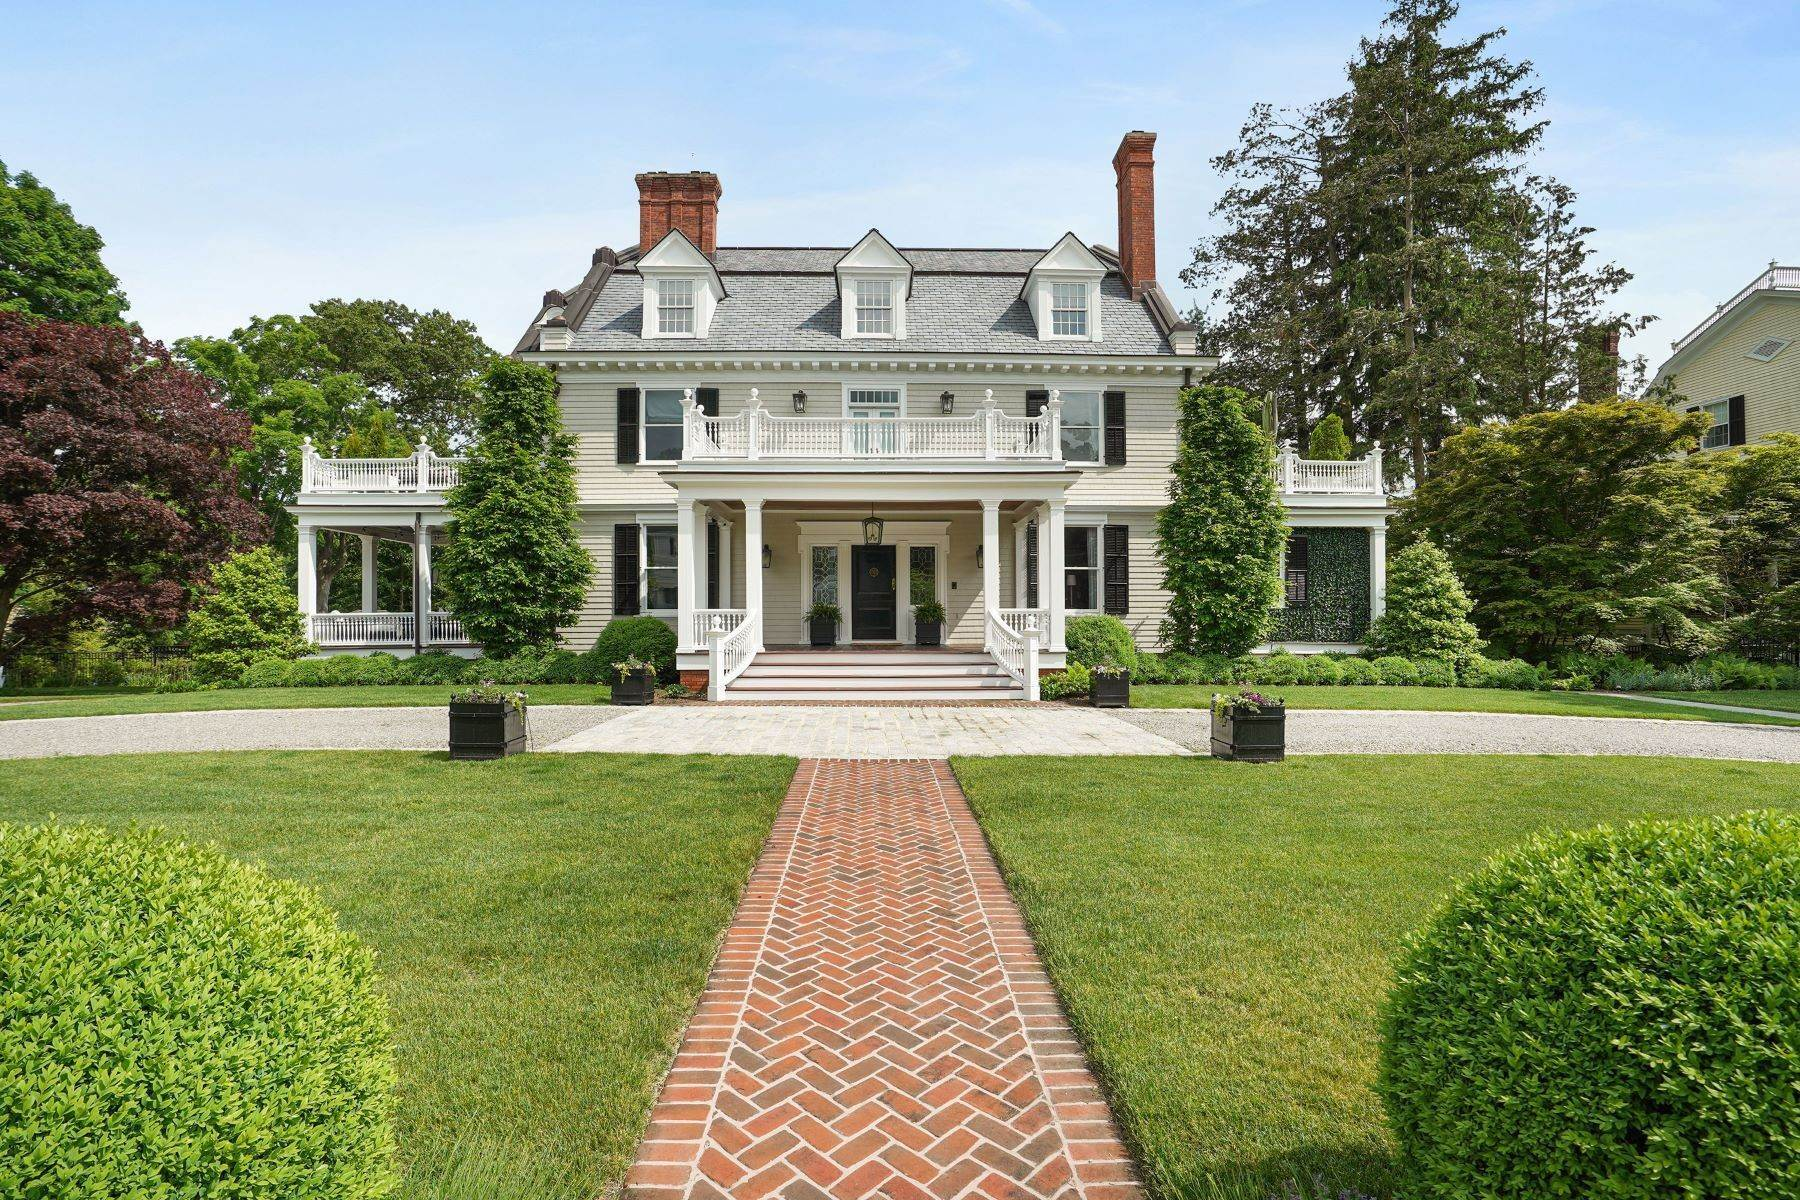 Single Family Homes for Sale at A Journey Into A Sophisticated Lifestyle 76 Miller Road Morristown, New Jersey 07960 United States